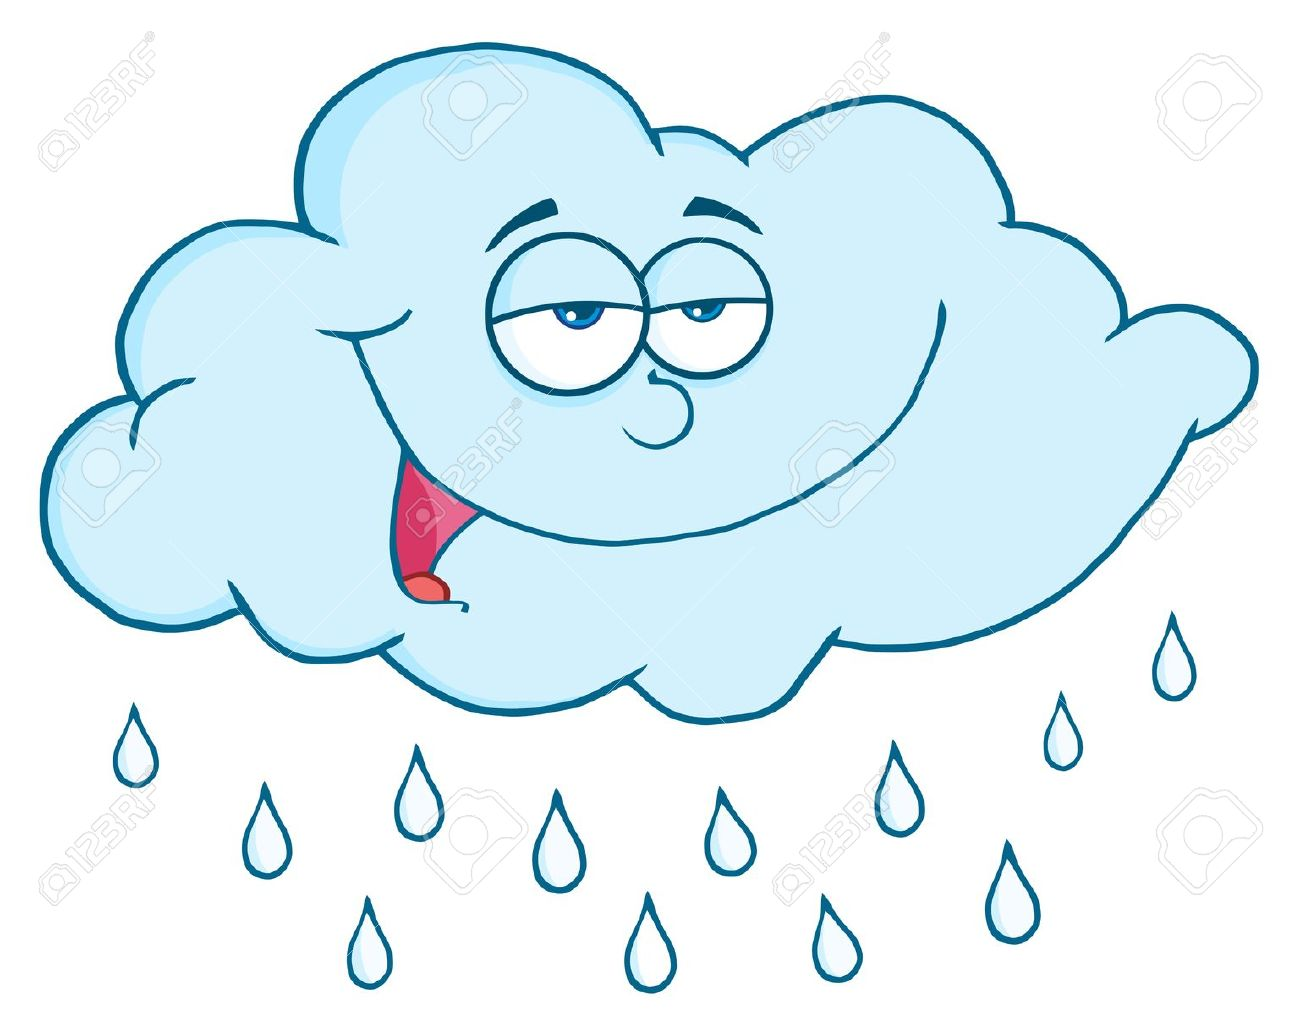 Clipart pluie svg library Pluie clipart 6 » Clipart Station svg library